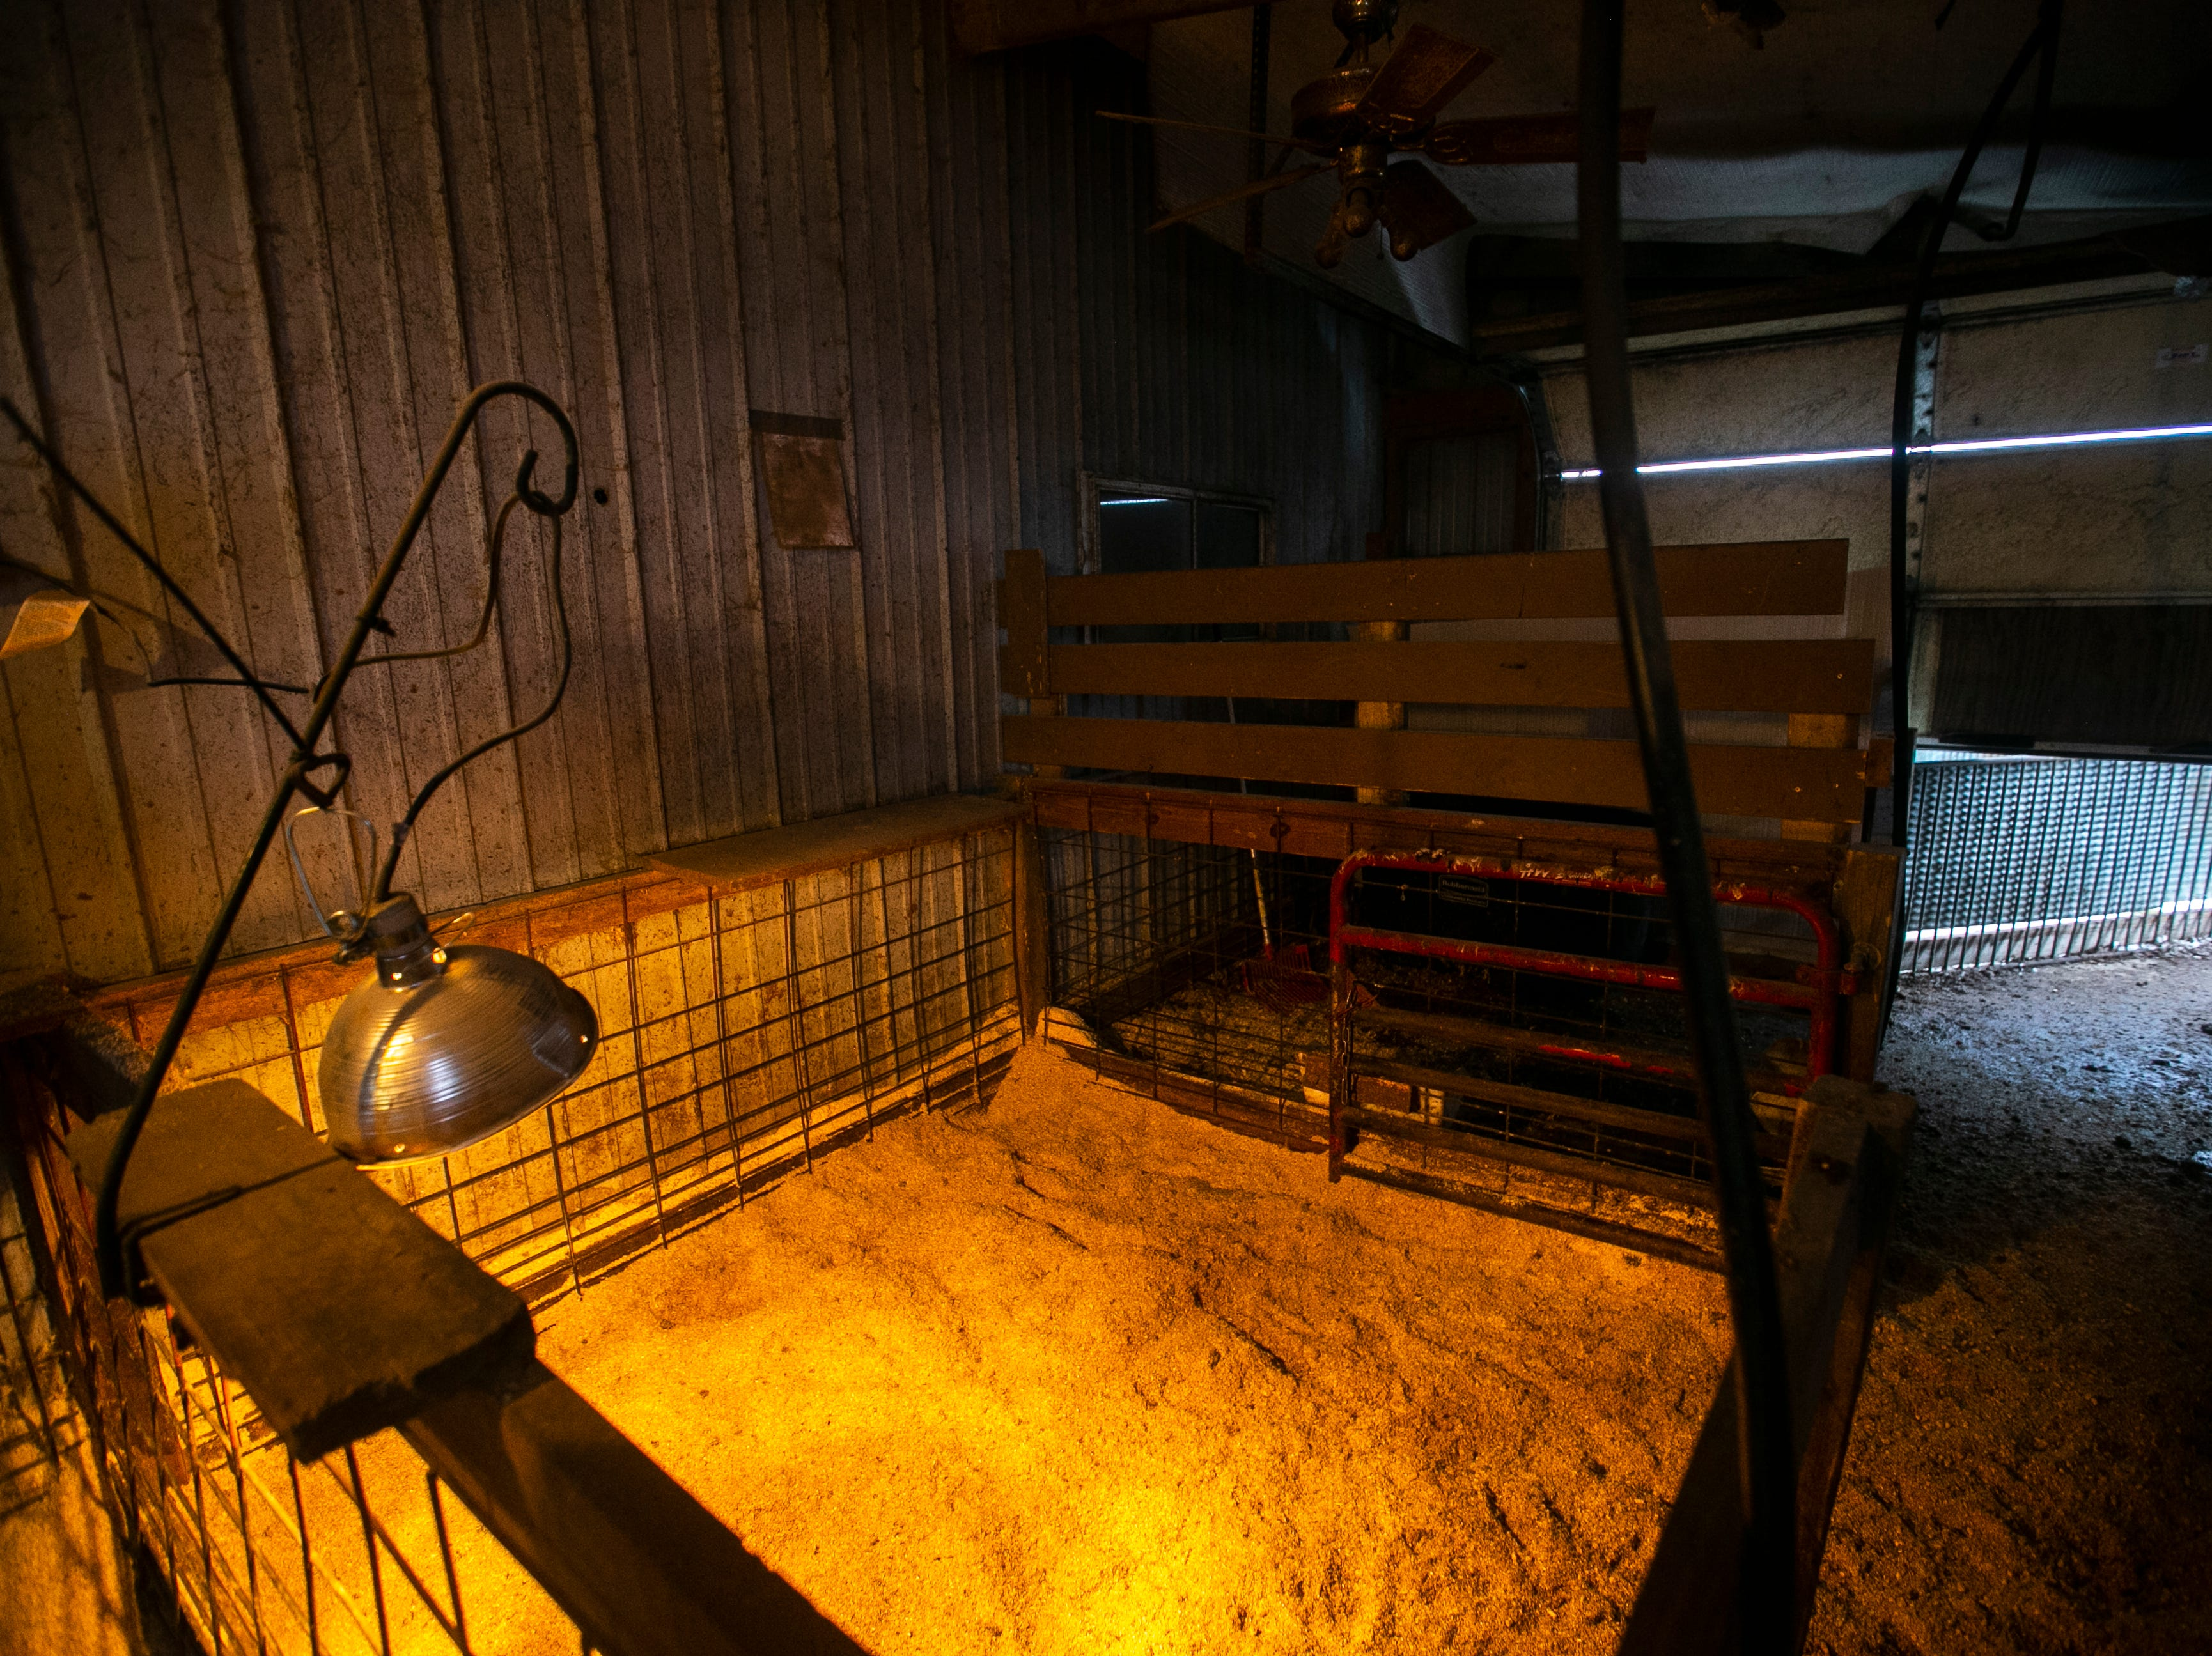 A heat lamp inside a barn where pigs can come and sleep during the night is seen on Thursday, Jan. 17, 2019, at Natural Oak Pork farm in West Branch, Iowa.